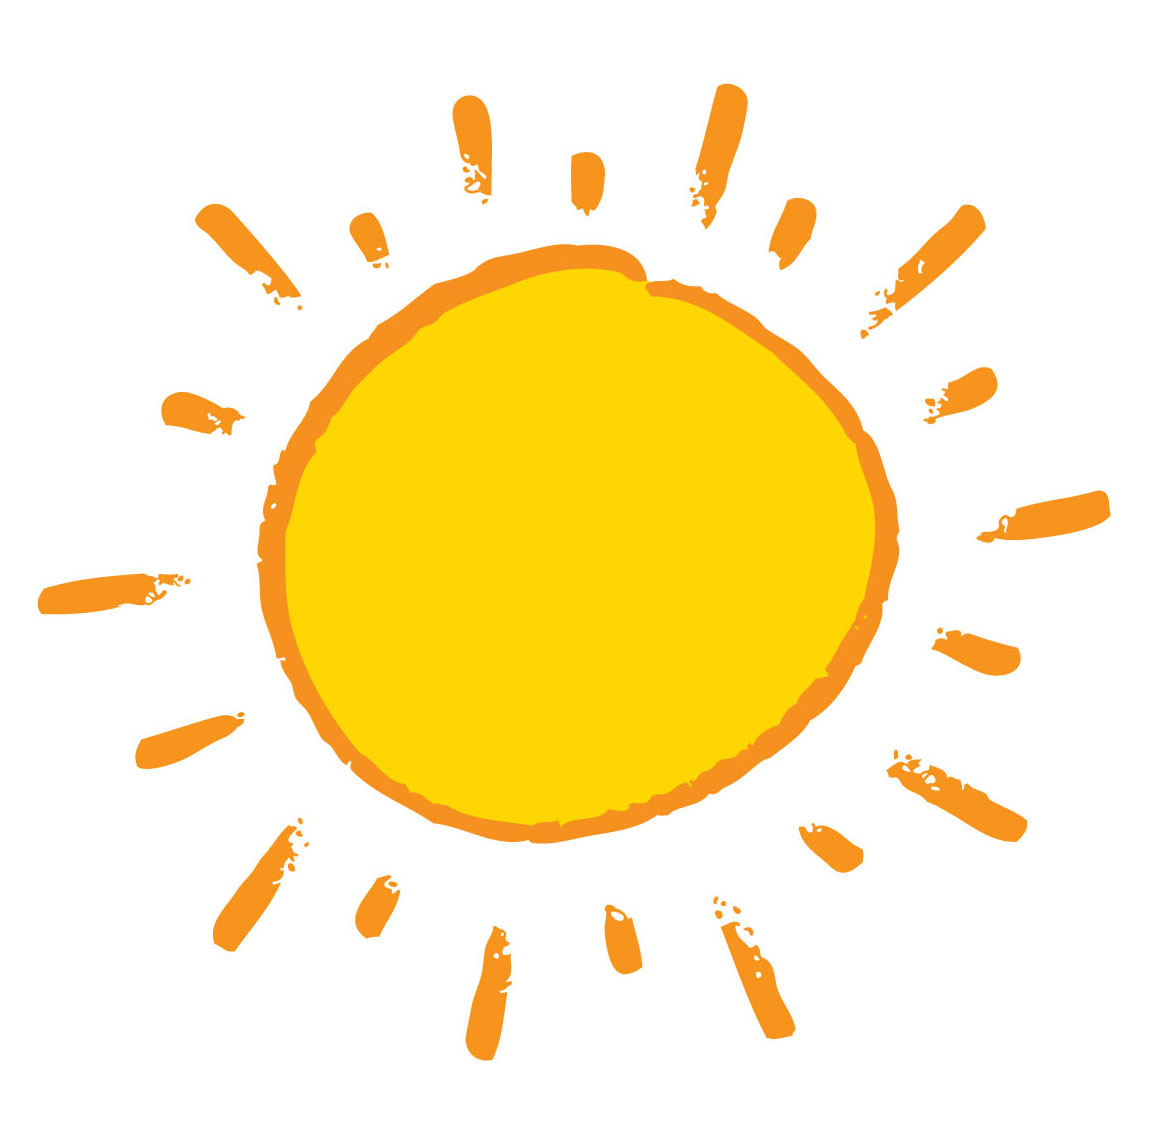 windows for sunshine icons 32865 free icons and png Cipar House On Fire Cipar House On Fire